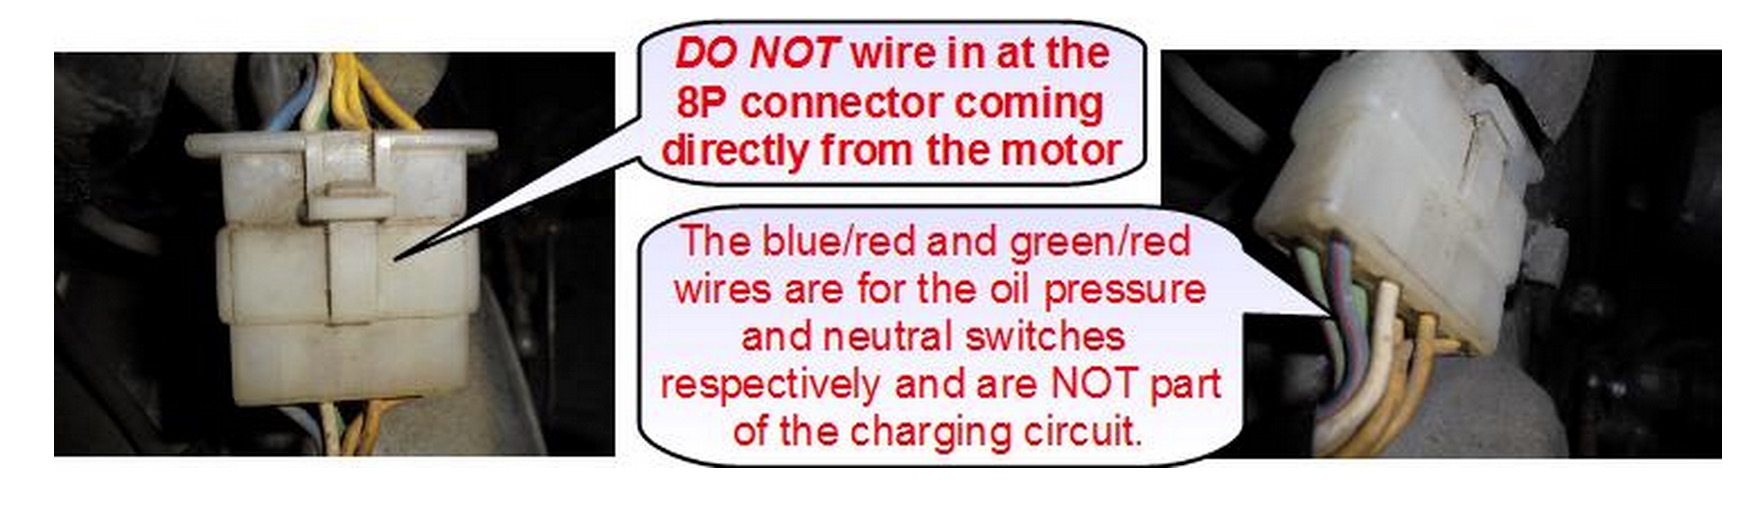 Aftermarket Honda Regulator Rectifier Oem Style Replacement Part 4 Wire Wiring Diagram For Scooter Wires That Originally Were Going To The Tabs On Oe Color Code Remains Same 10 100 Plugs Into Harness At